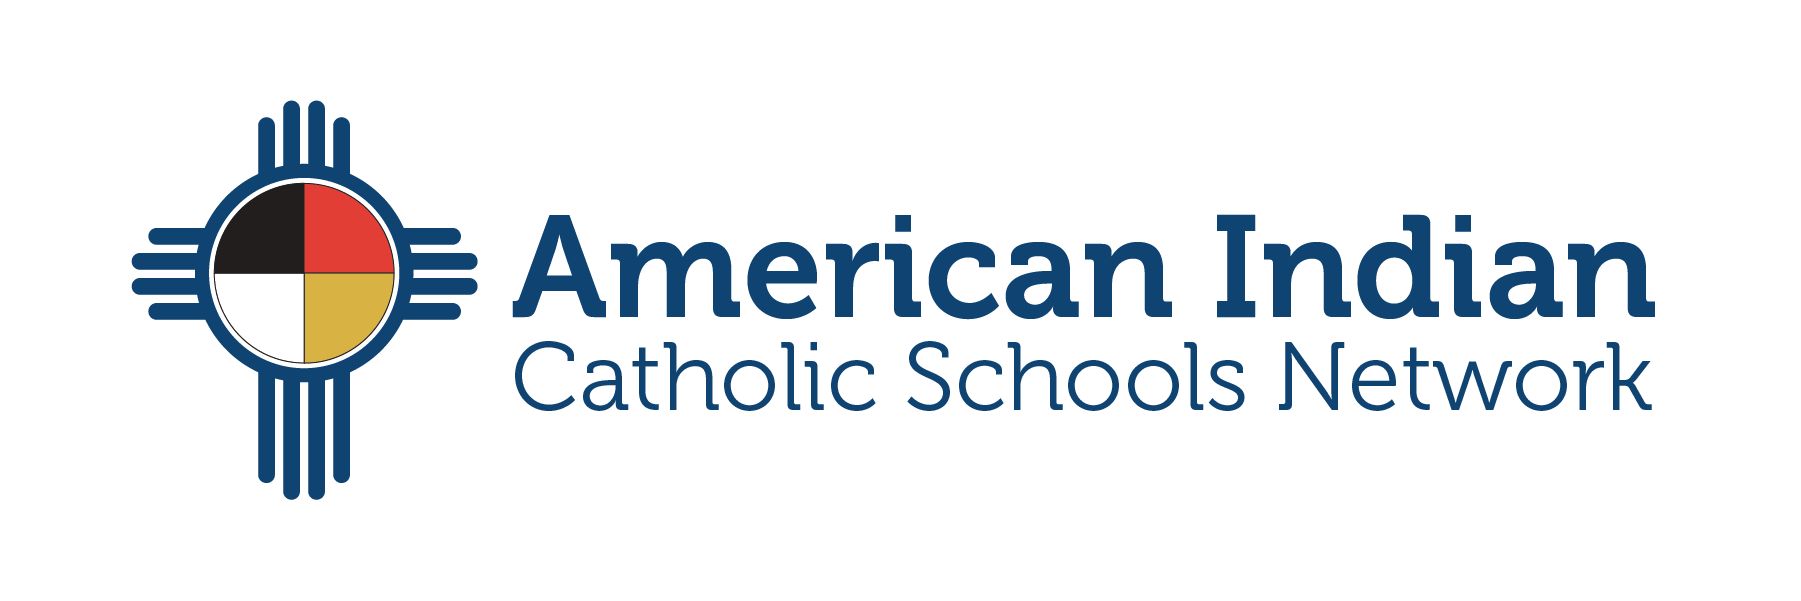 American Indian Catholic Schools Network